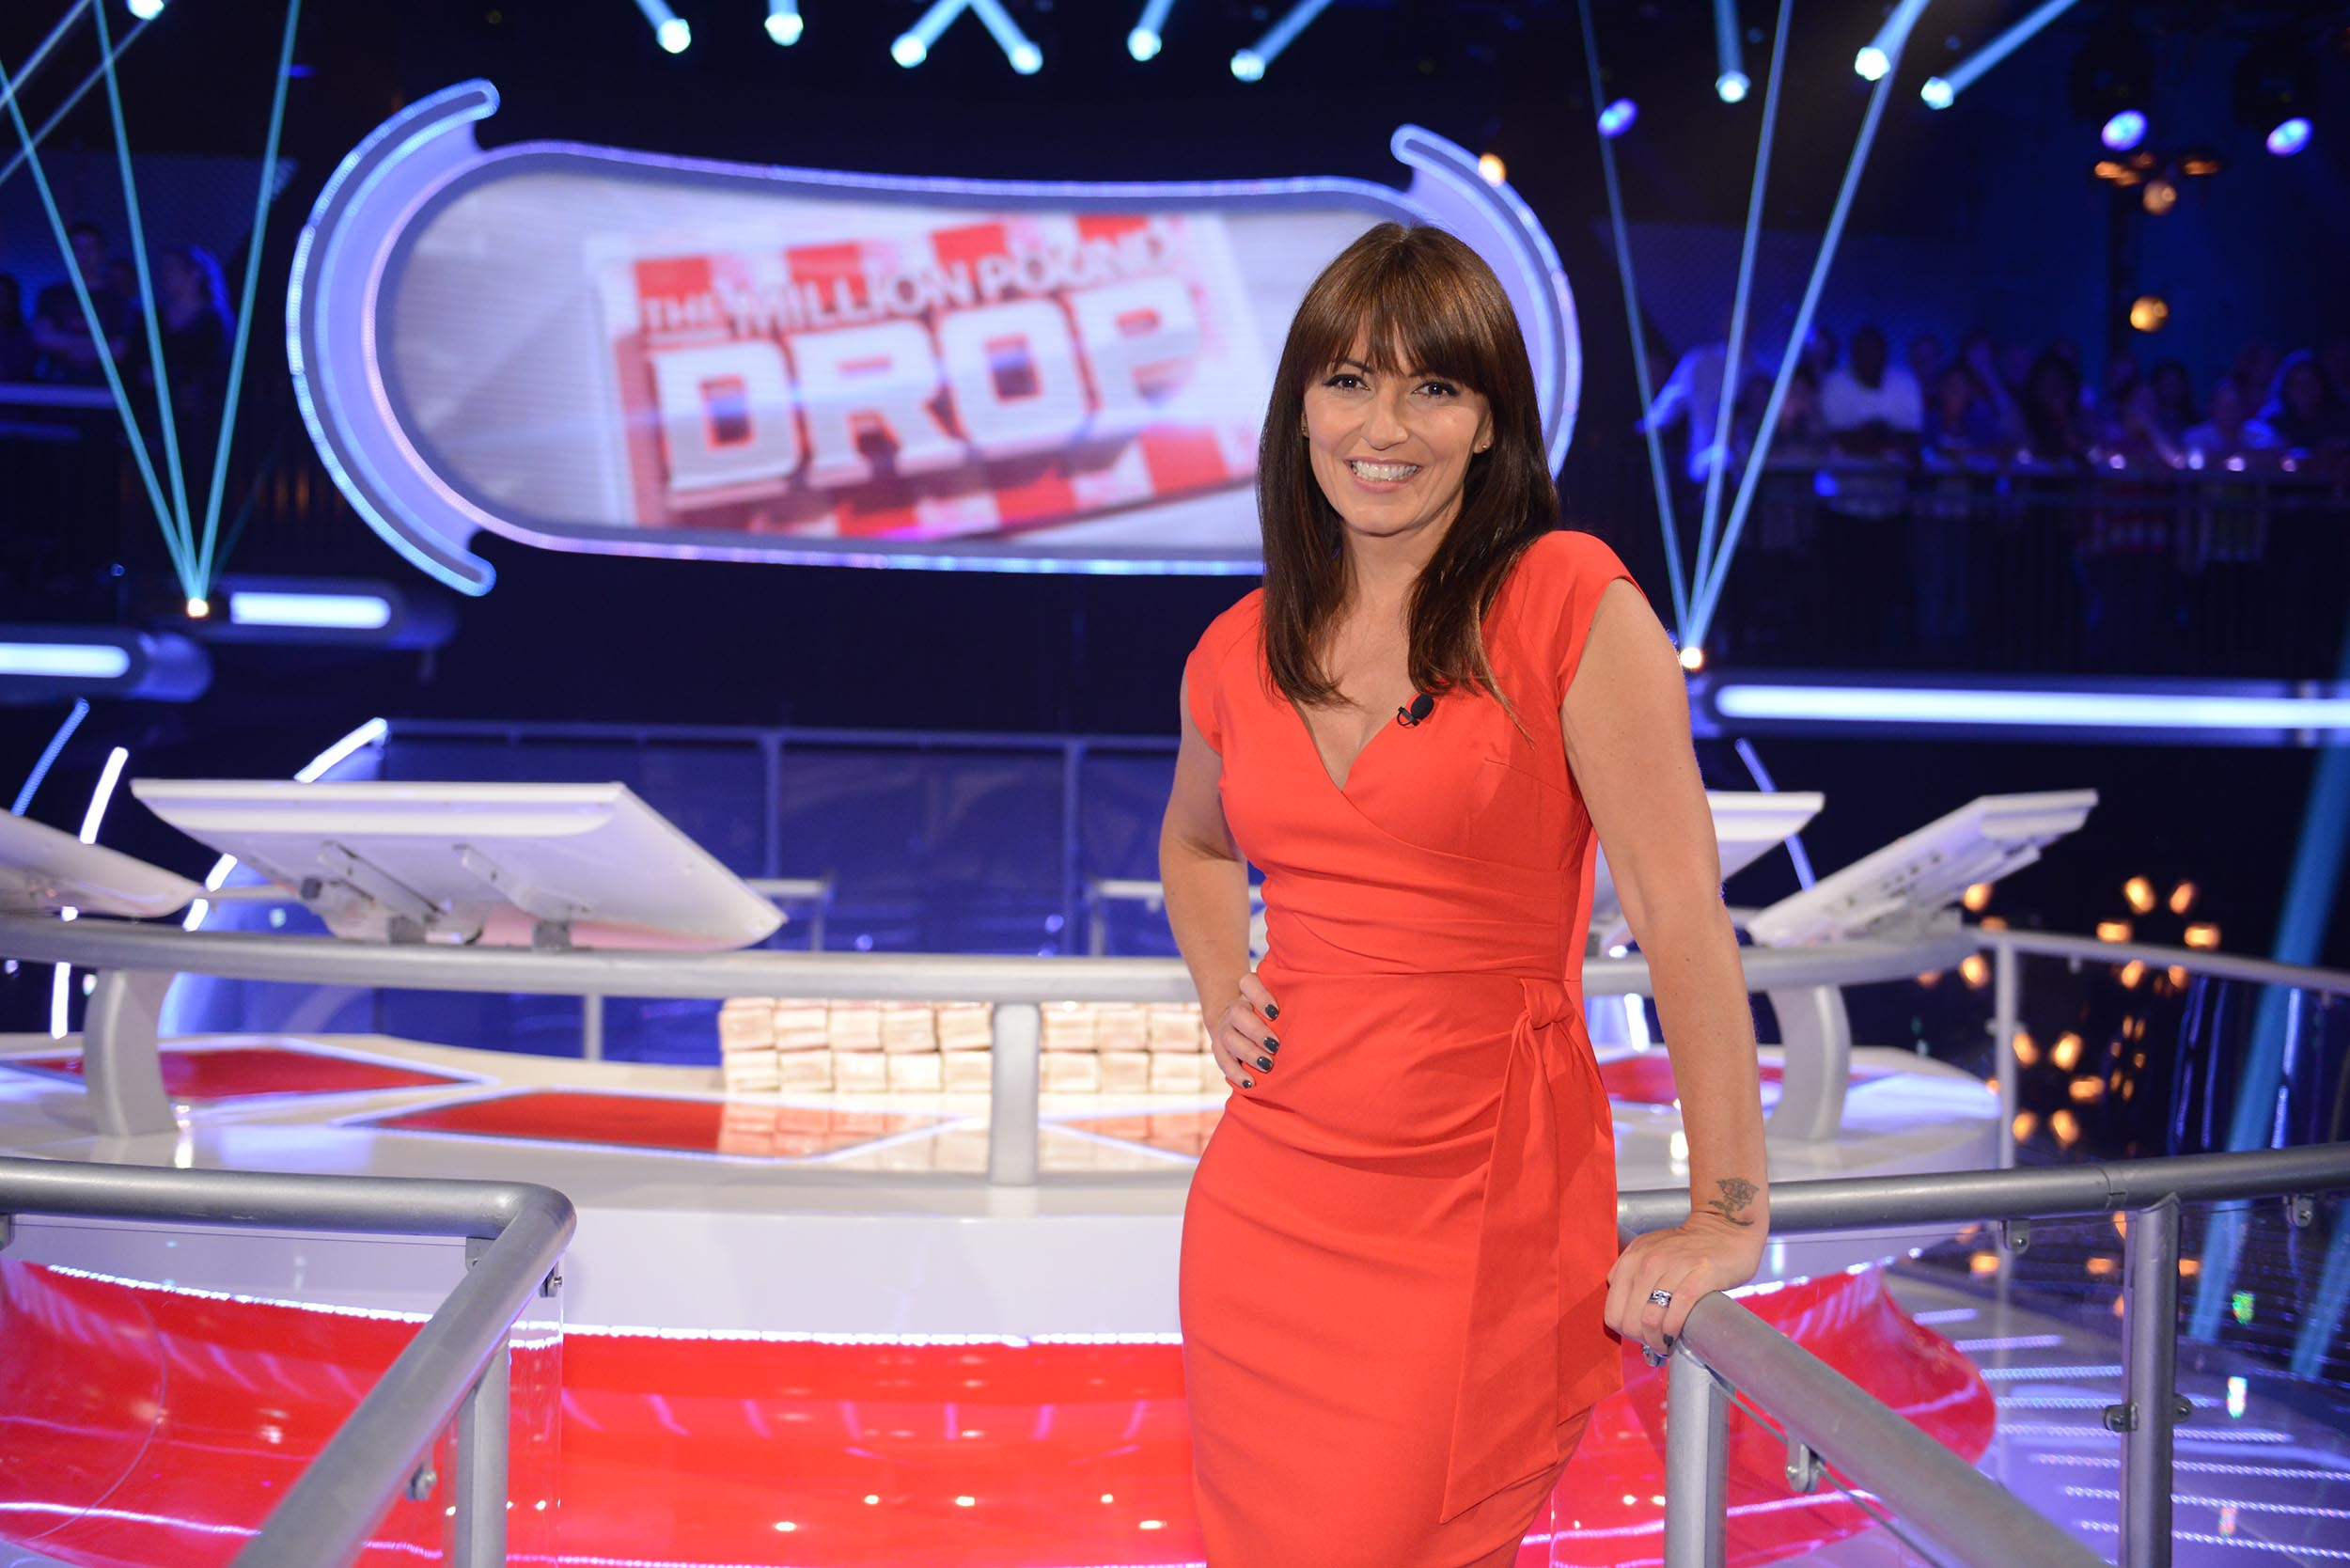 Million Pound Drop is returning to TV – with one notable difference